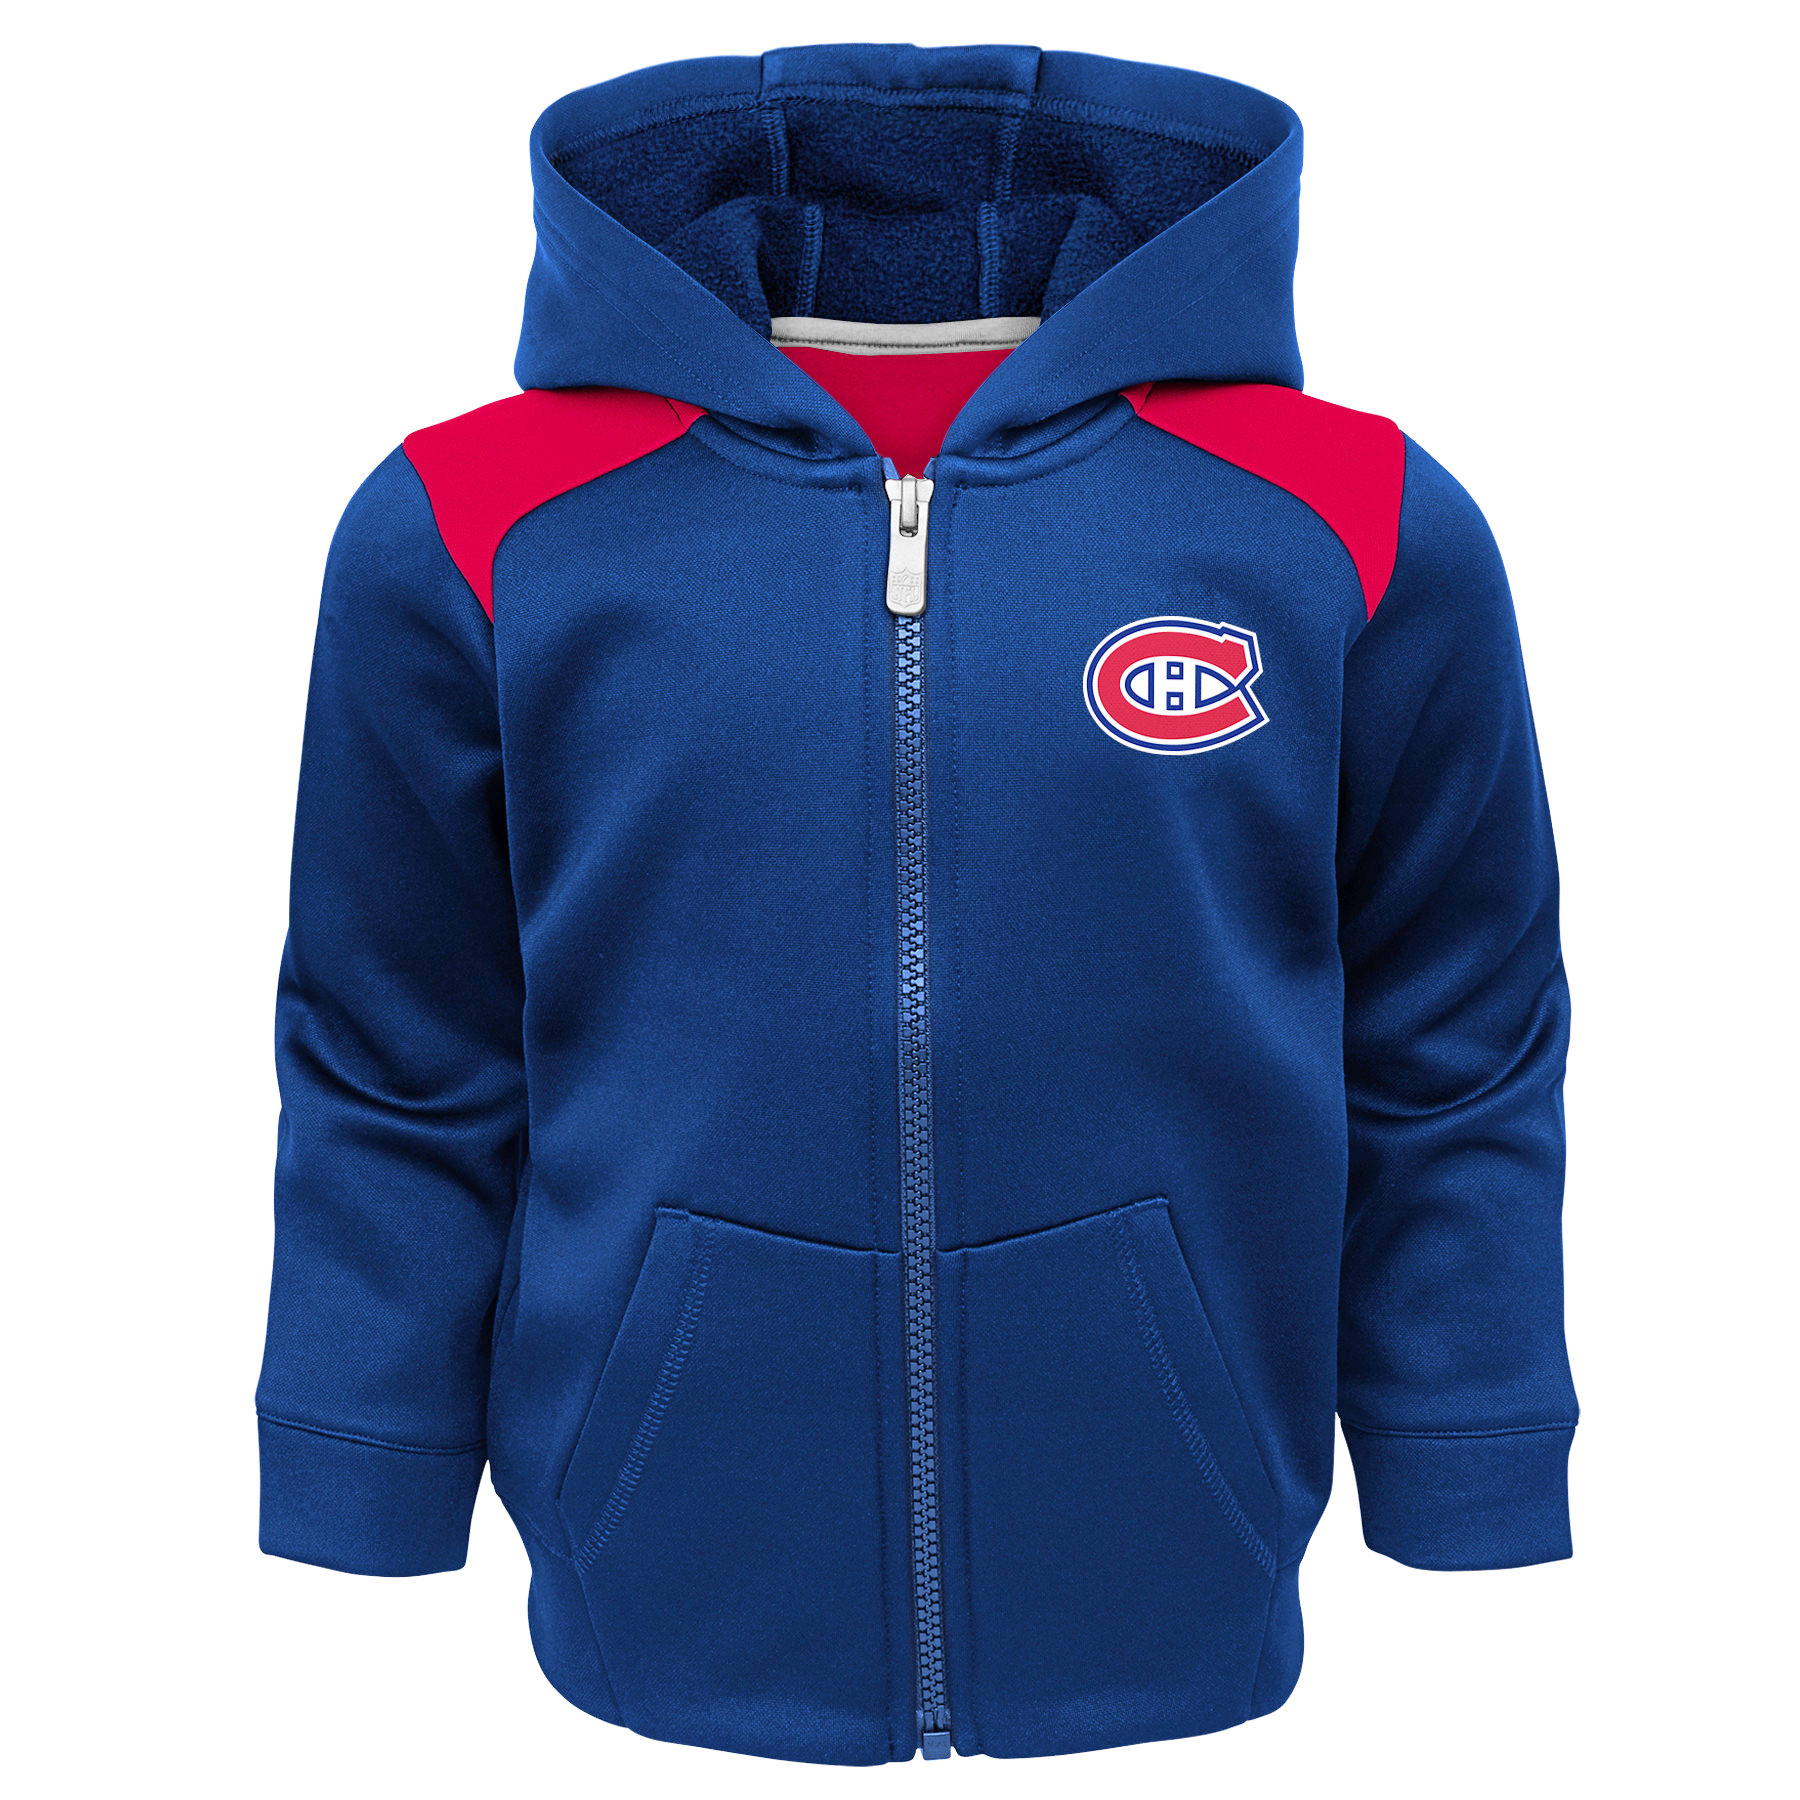 Outerstuff Youth Montreal Canadiens NHL Catcher Performance Fleece Set - image 1 of 2